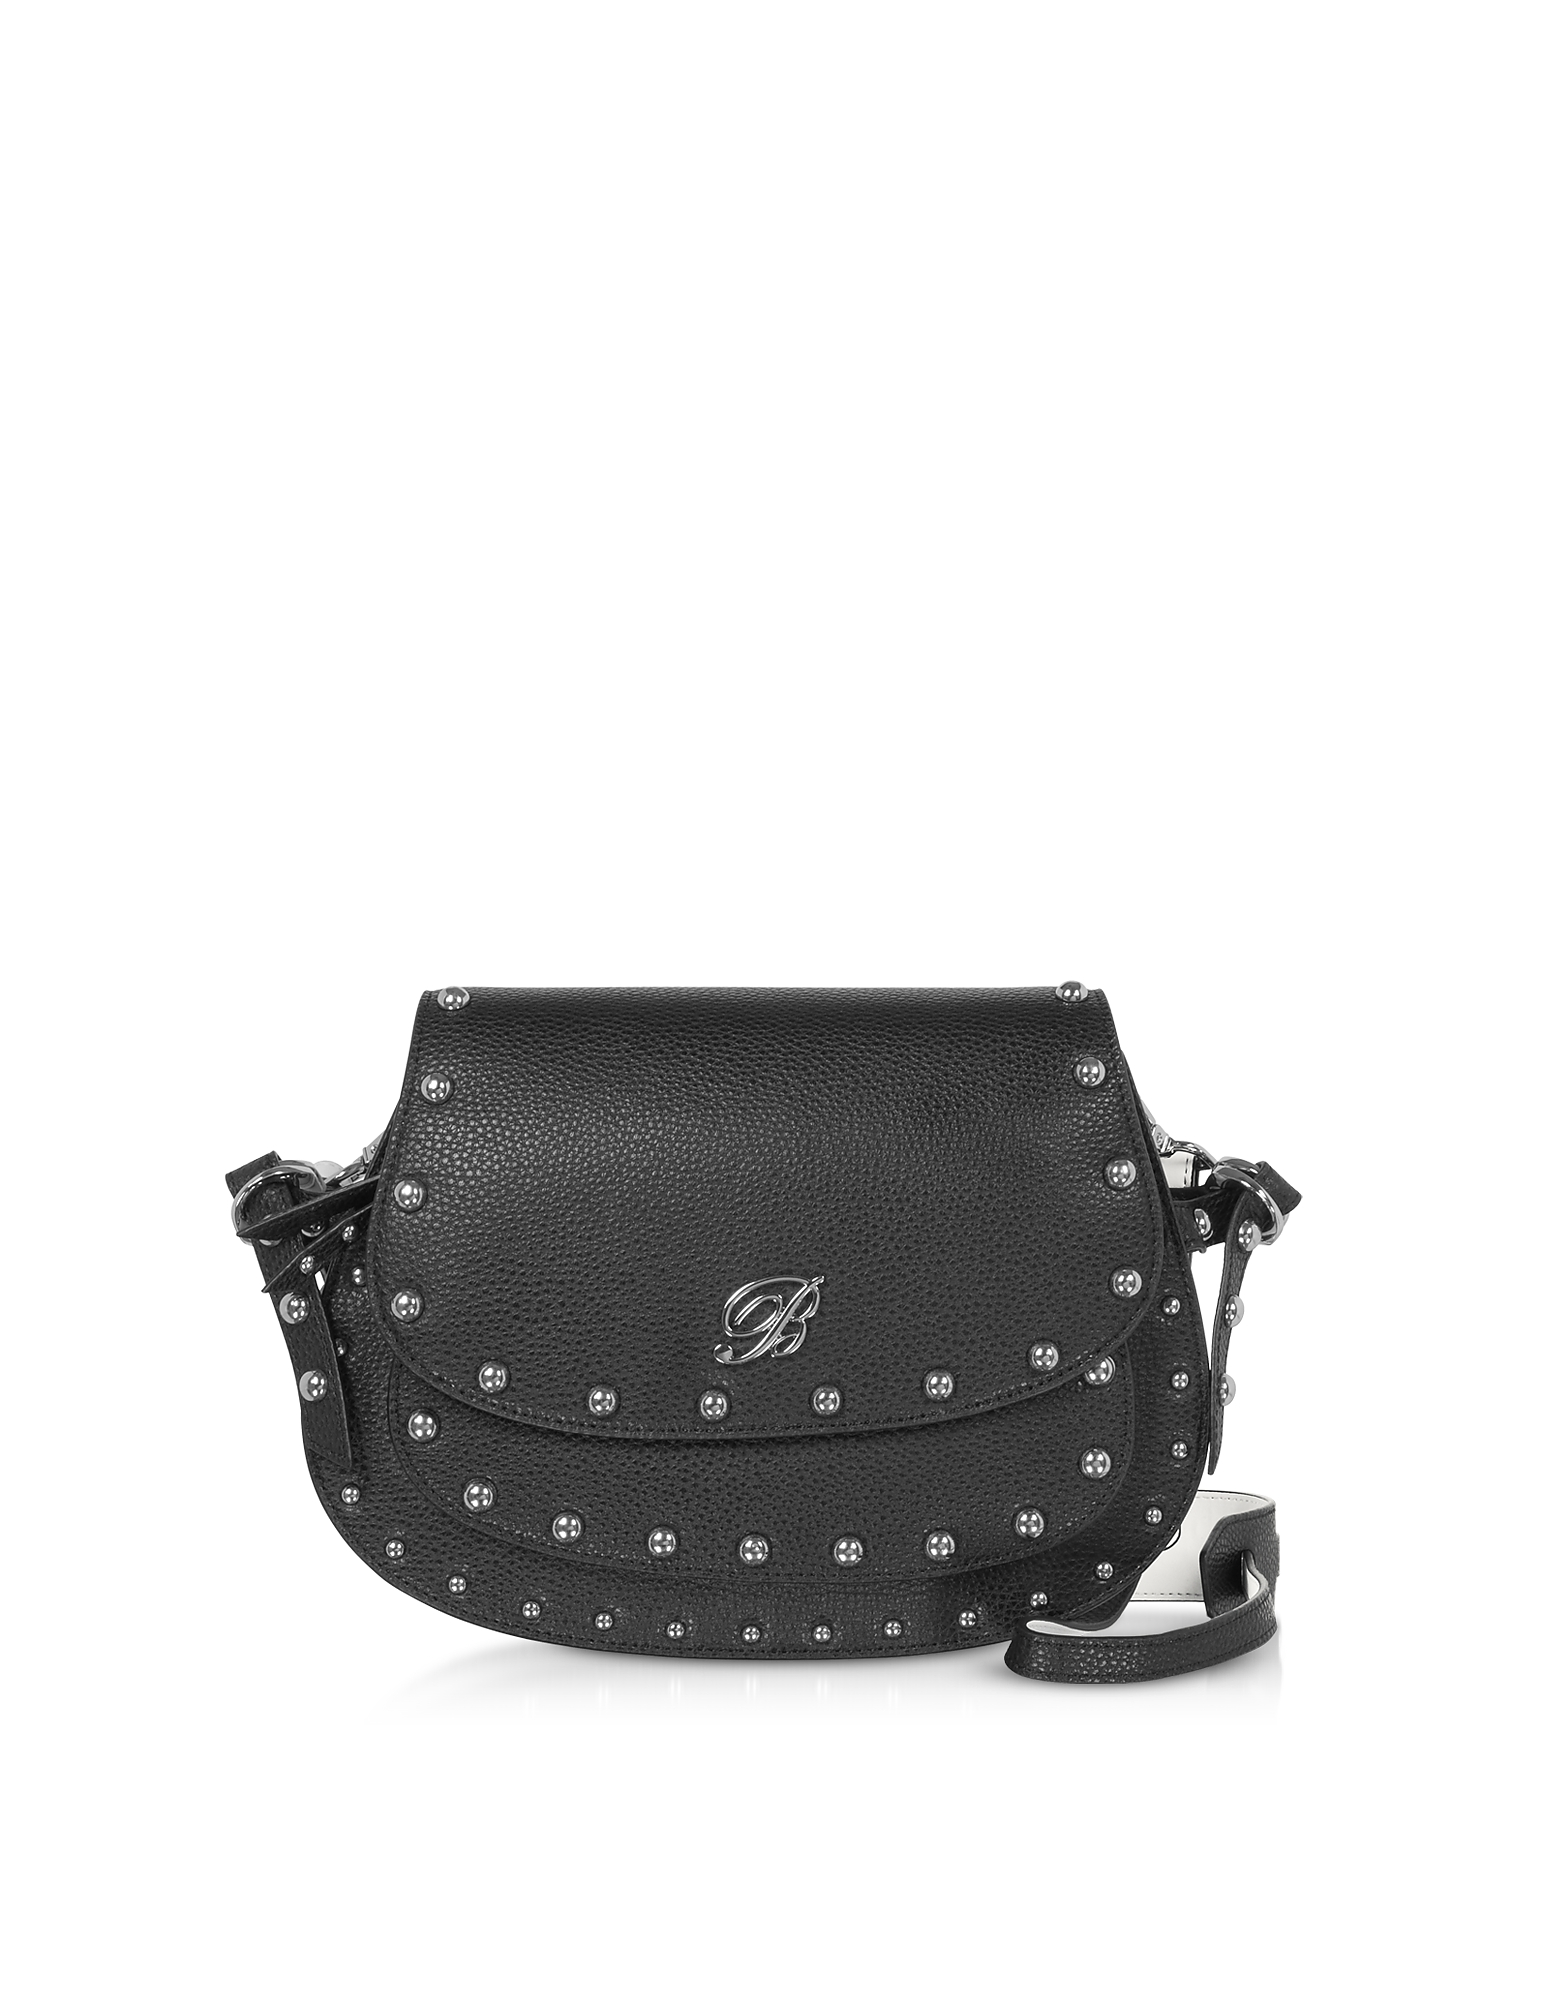 Blumarine Designer Handbags, Andrea Fluo Black Leather Crossbody Bag